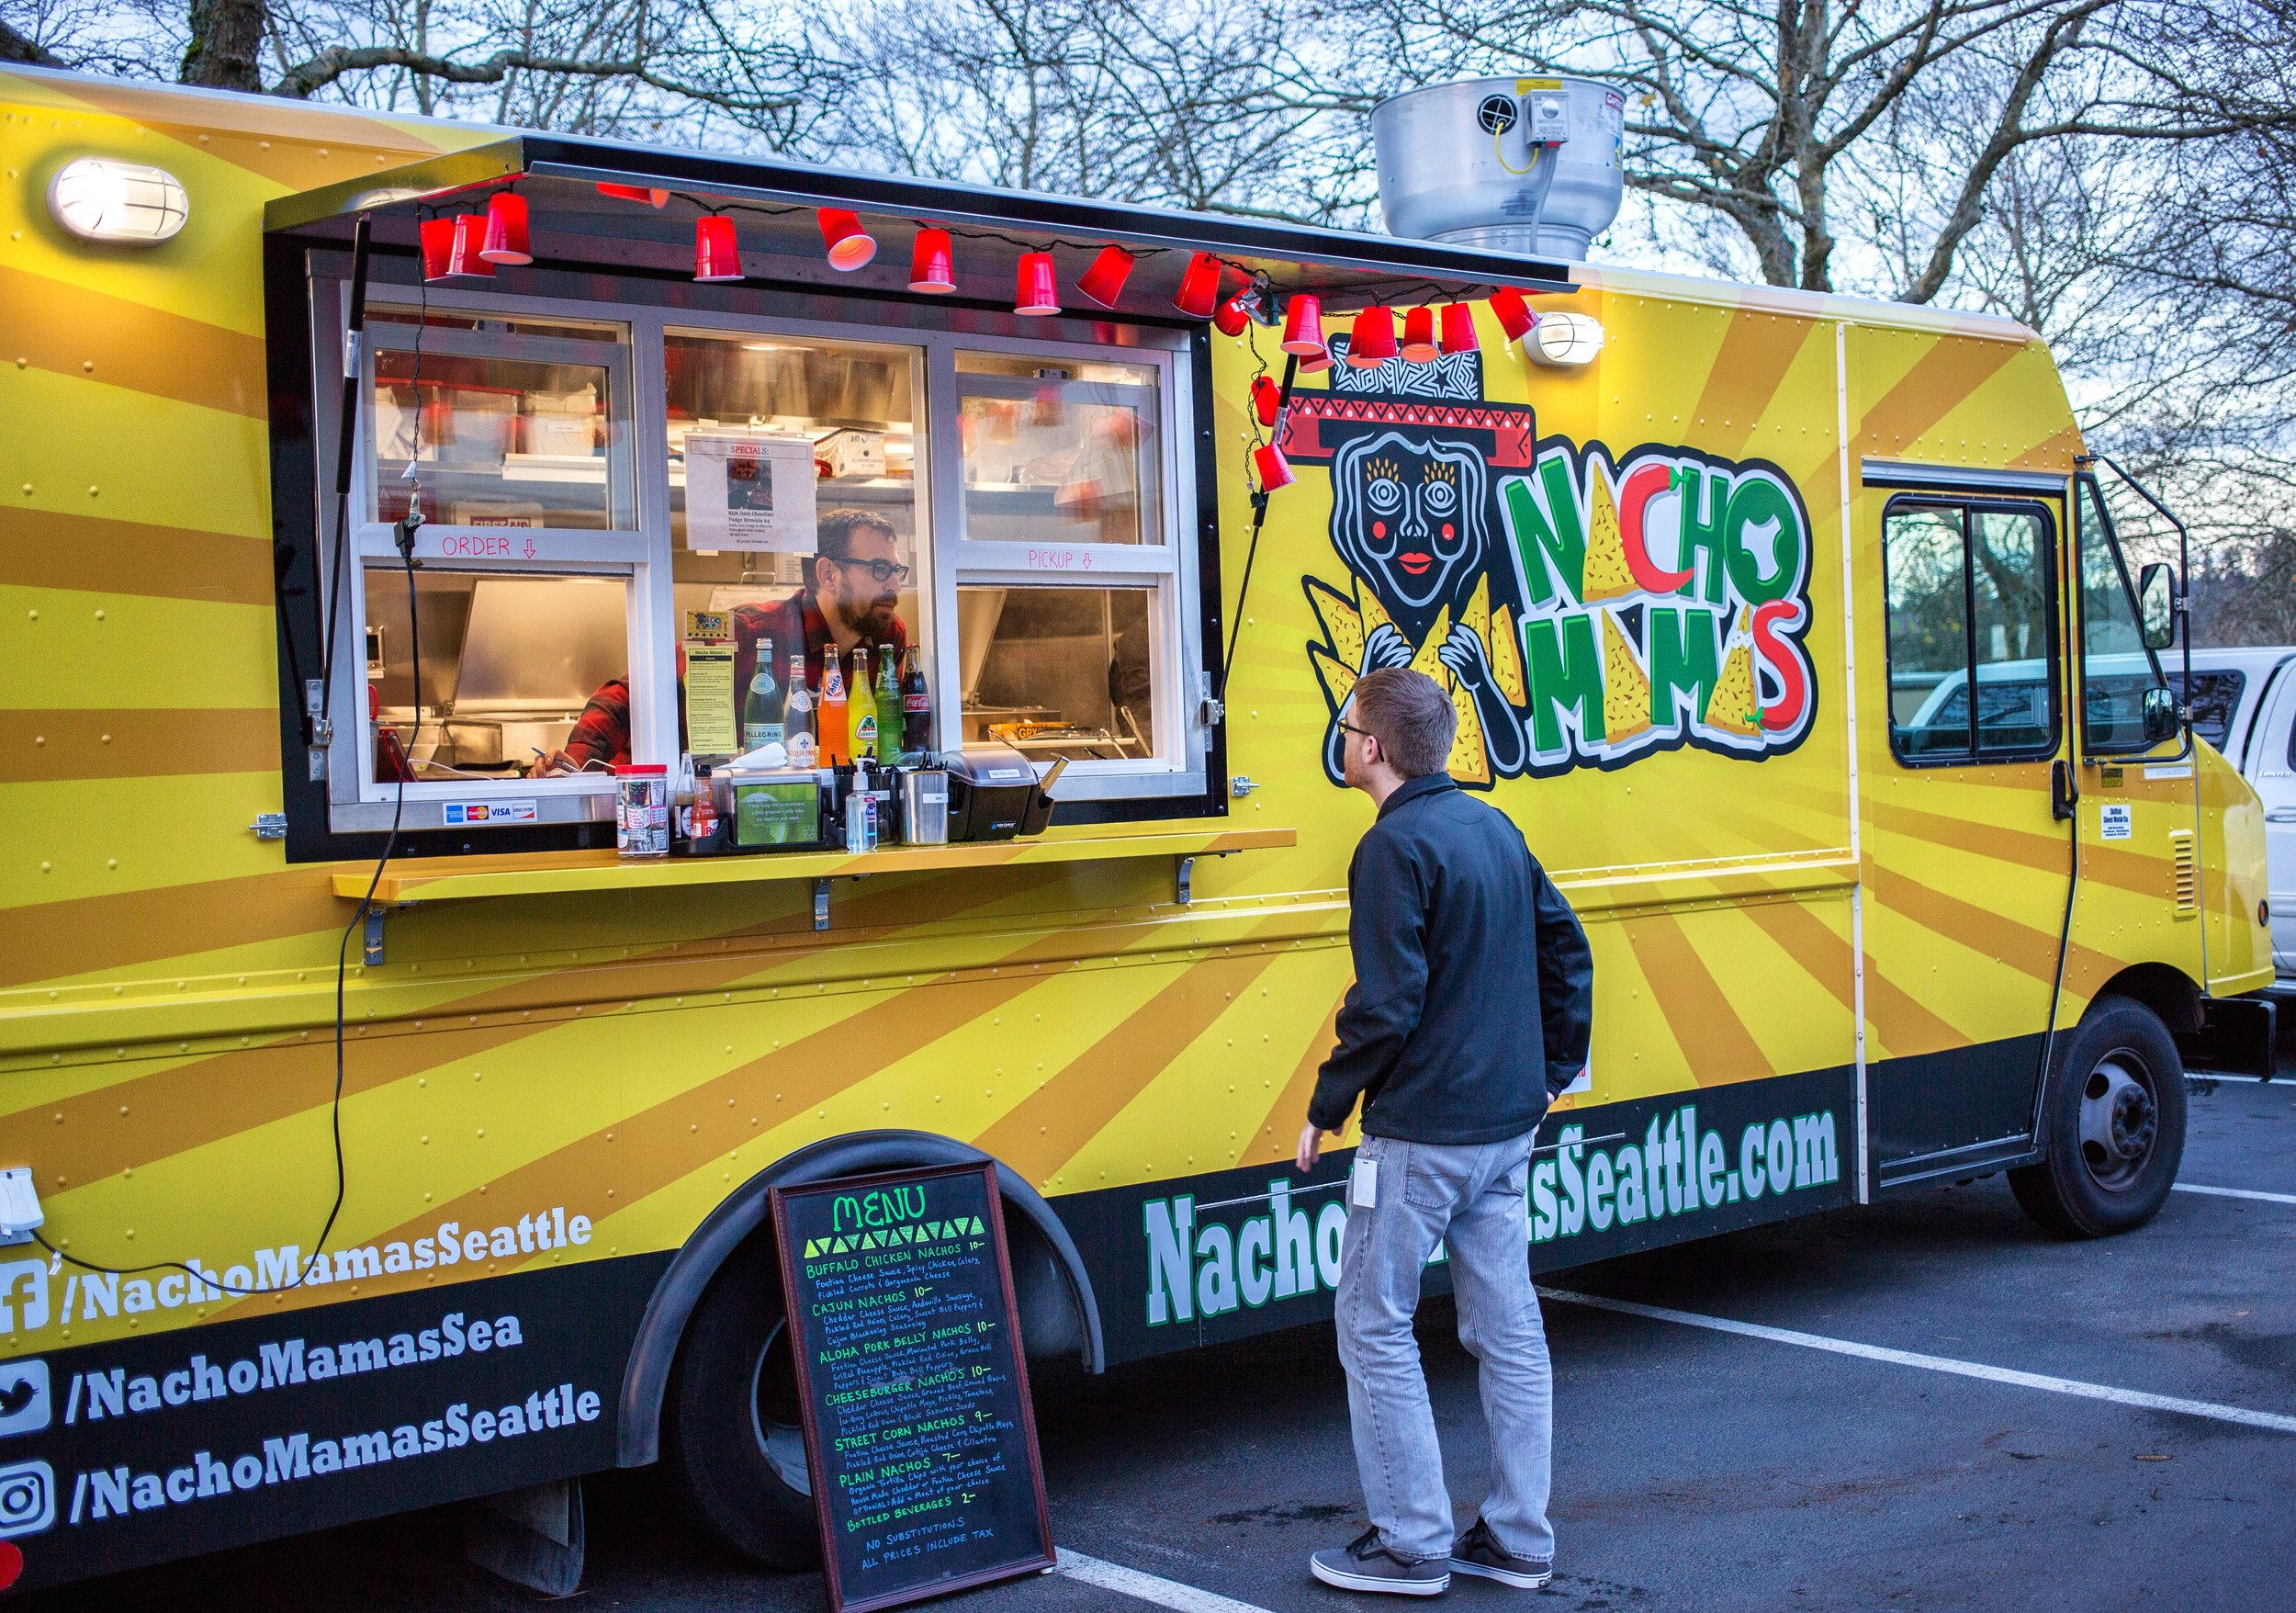 Nacho Mama's - Nacho FusionFind on FacebookTwitter @NachoMamasSeaPhone: 206-579-1810Email: nachomamasseattle@gmail.comAlso serves in: Seattle, Bellevue, Woodinville